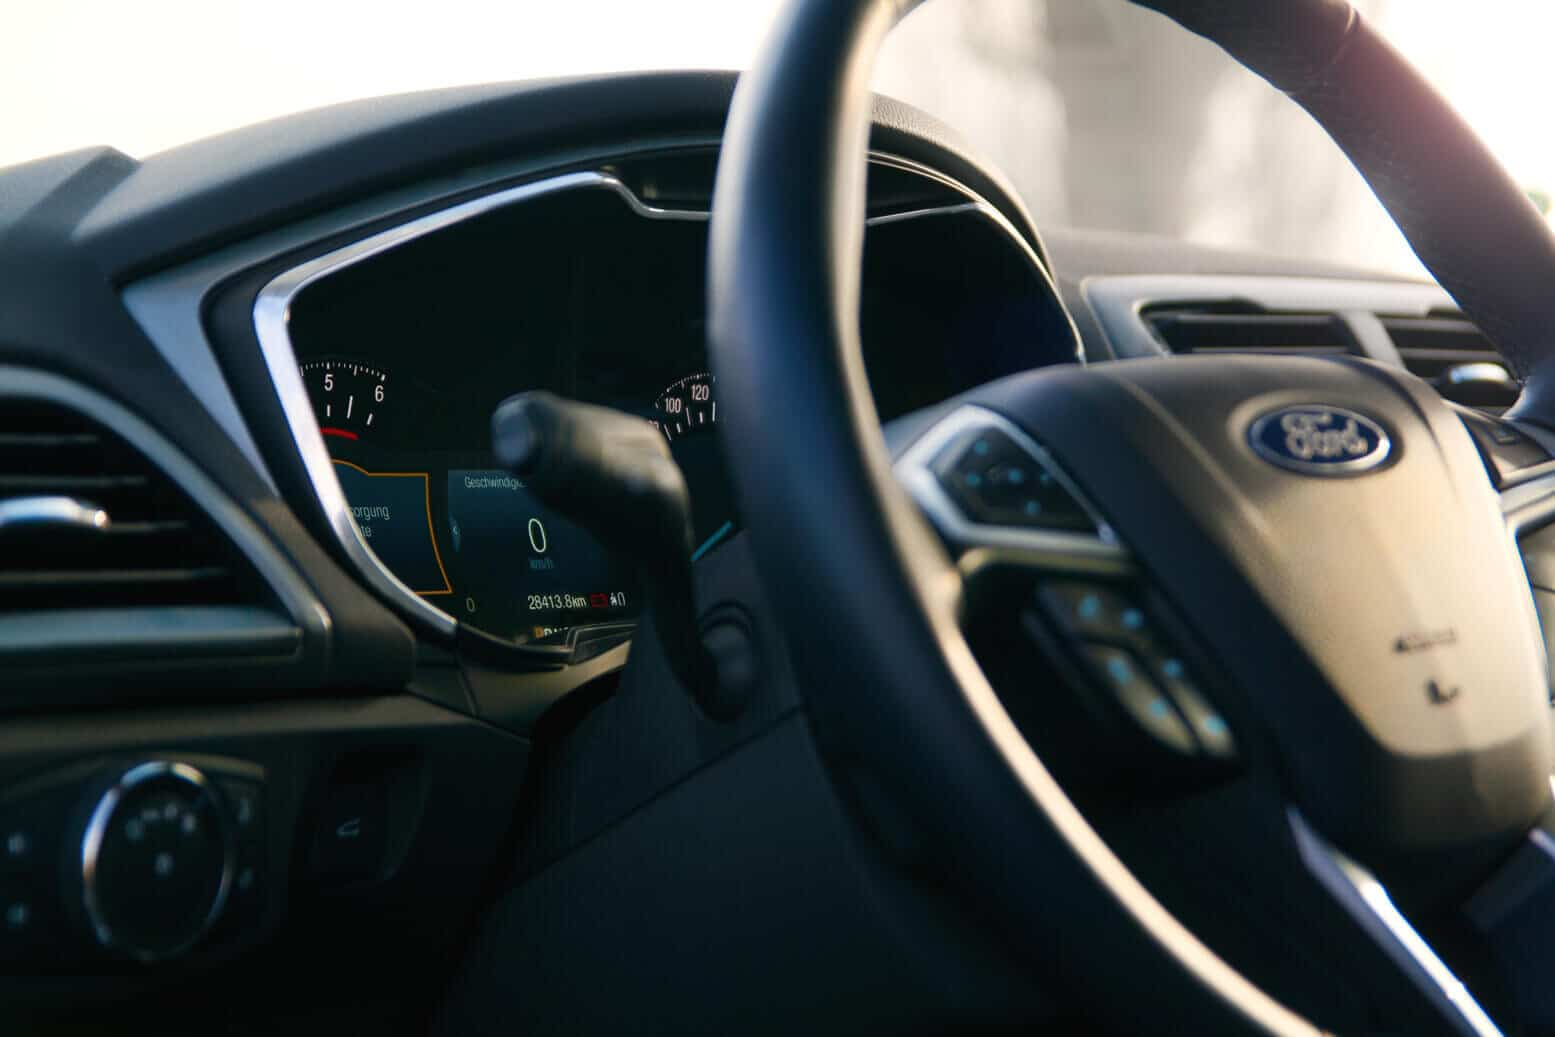 Ford Mondeo 2018 Modell im Herbst Interior